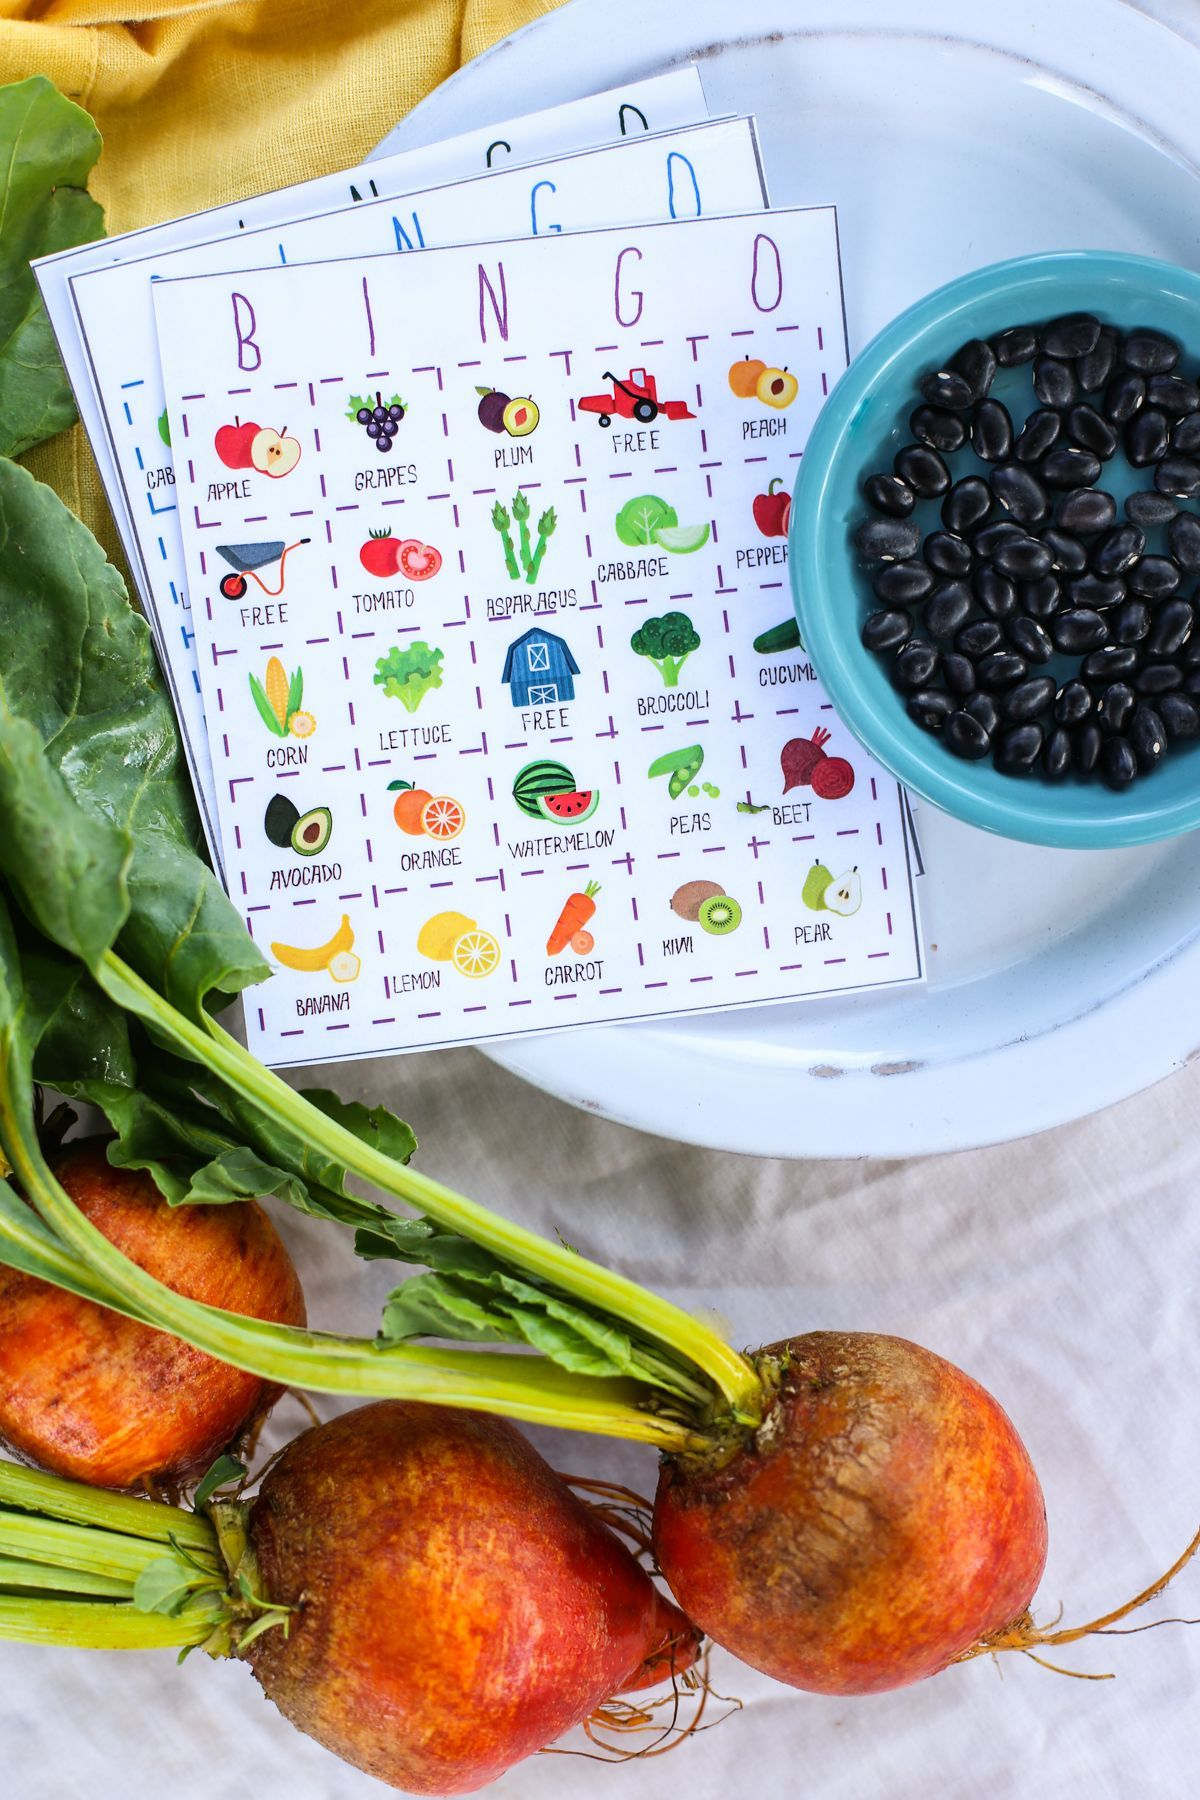 Teach Your Kids To Love Fruits And Veggies With This Free